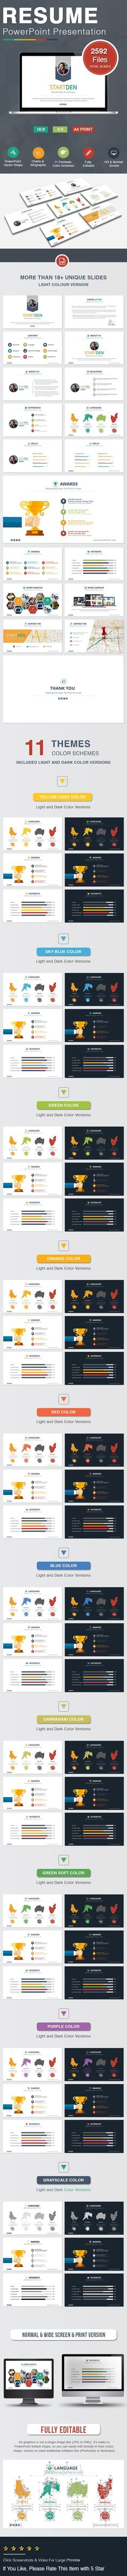 Seo powerpoint template website optimization online marketing and resume powerpoint powerpoint templates presentation templates toneelgroepblik Choice Image